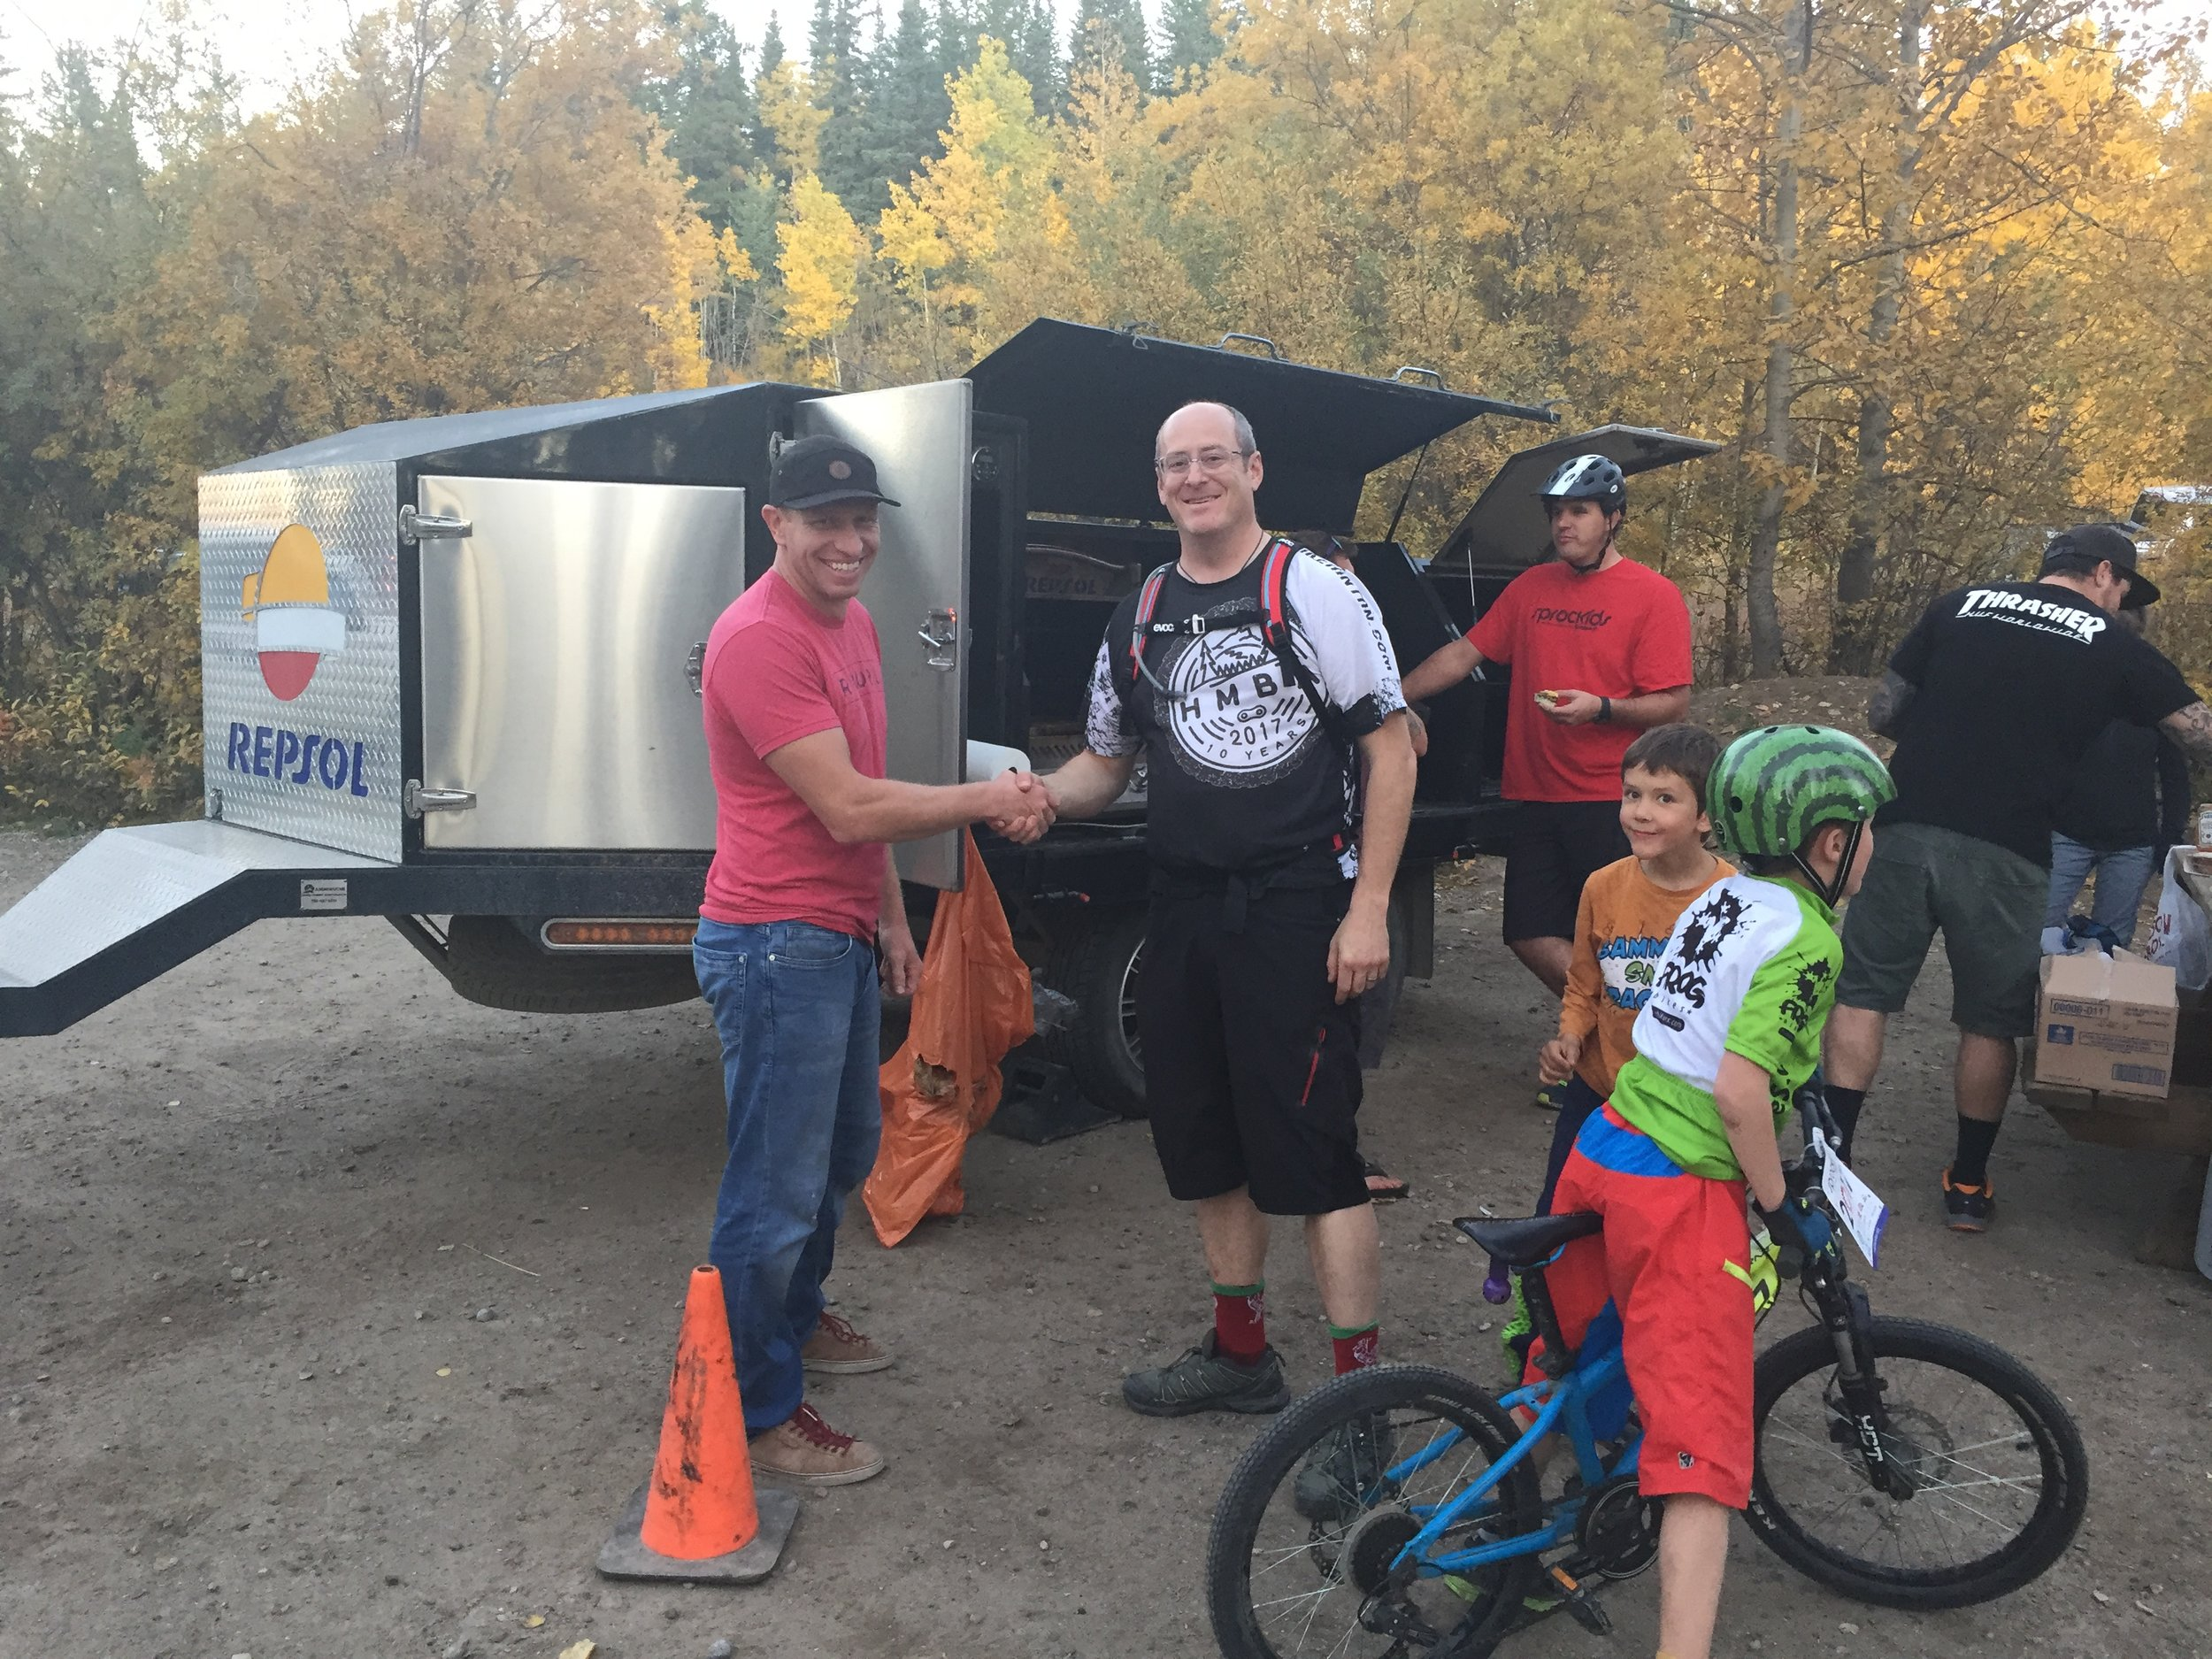 Tim Trahan, Hinton Sprockids Coordinator, thanks Jesse Kirillo, representative of REPSOL, for donating the use of their mobile BBQ for the program's year-end session.